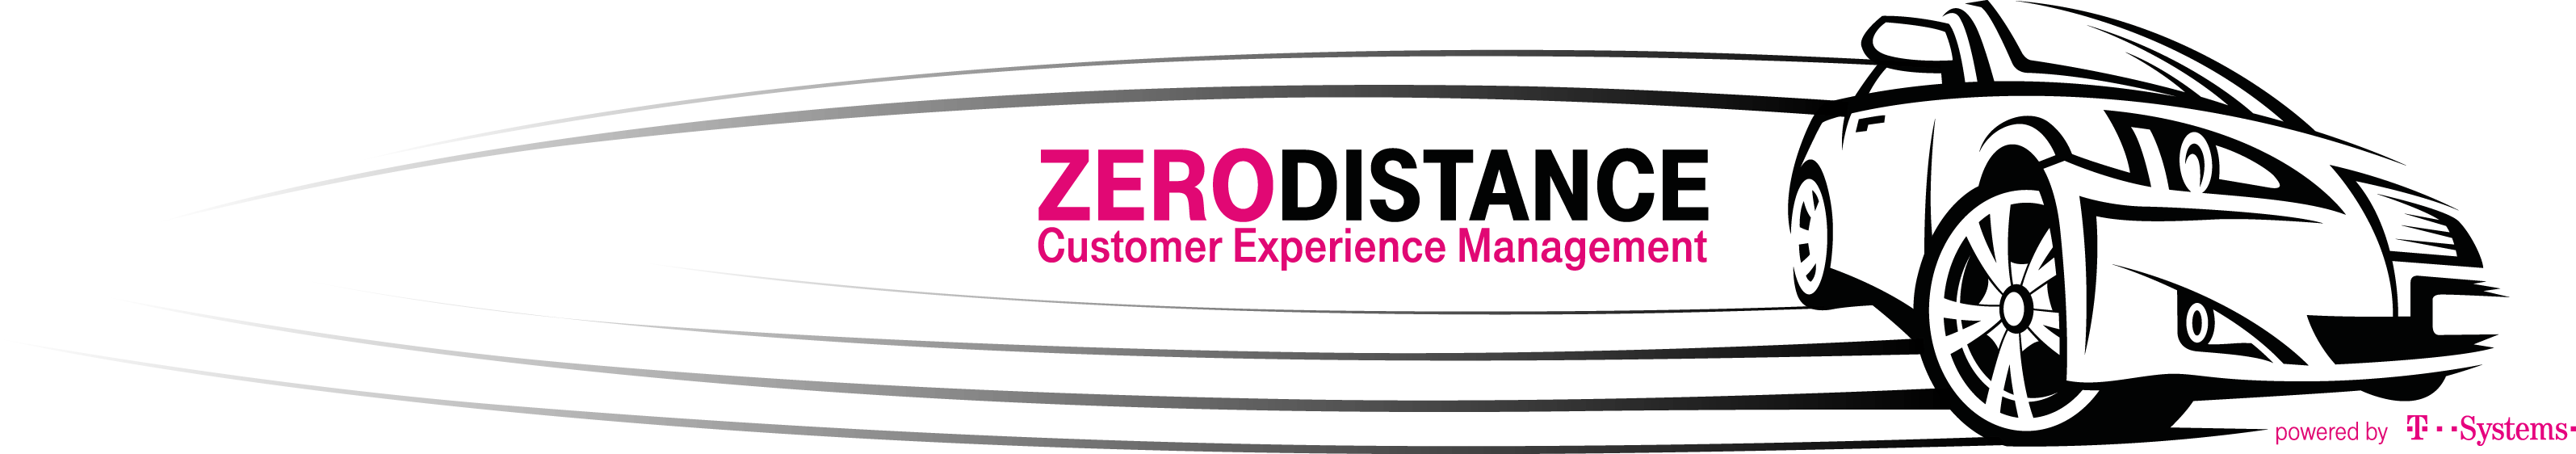 Customer Experience Management Automotive